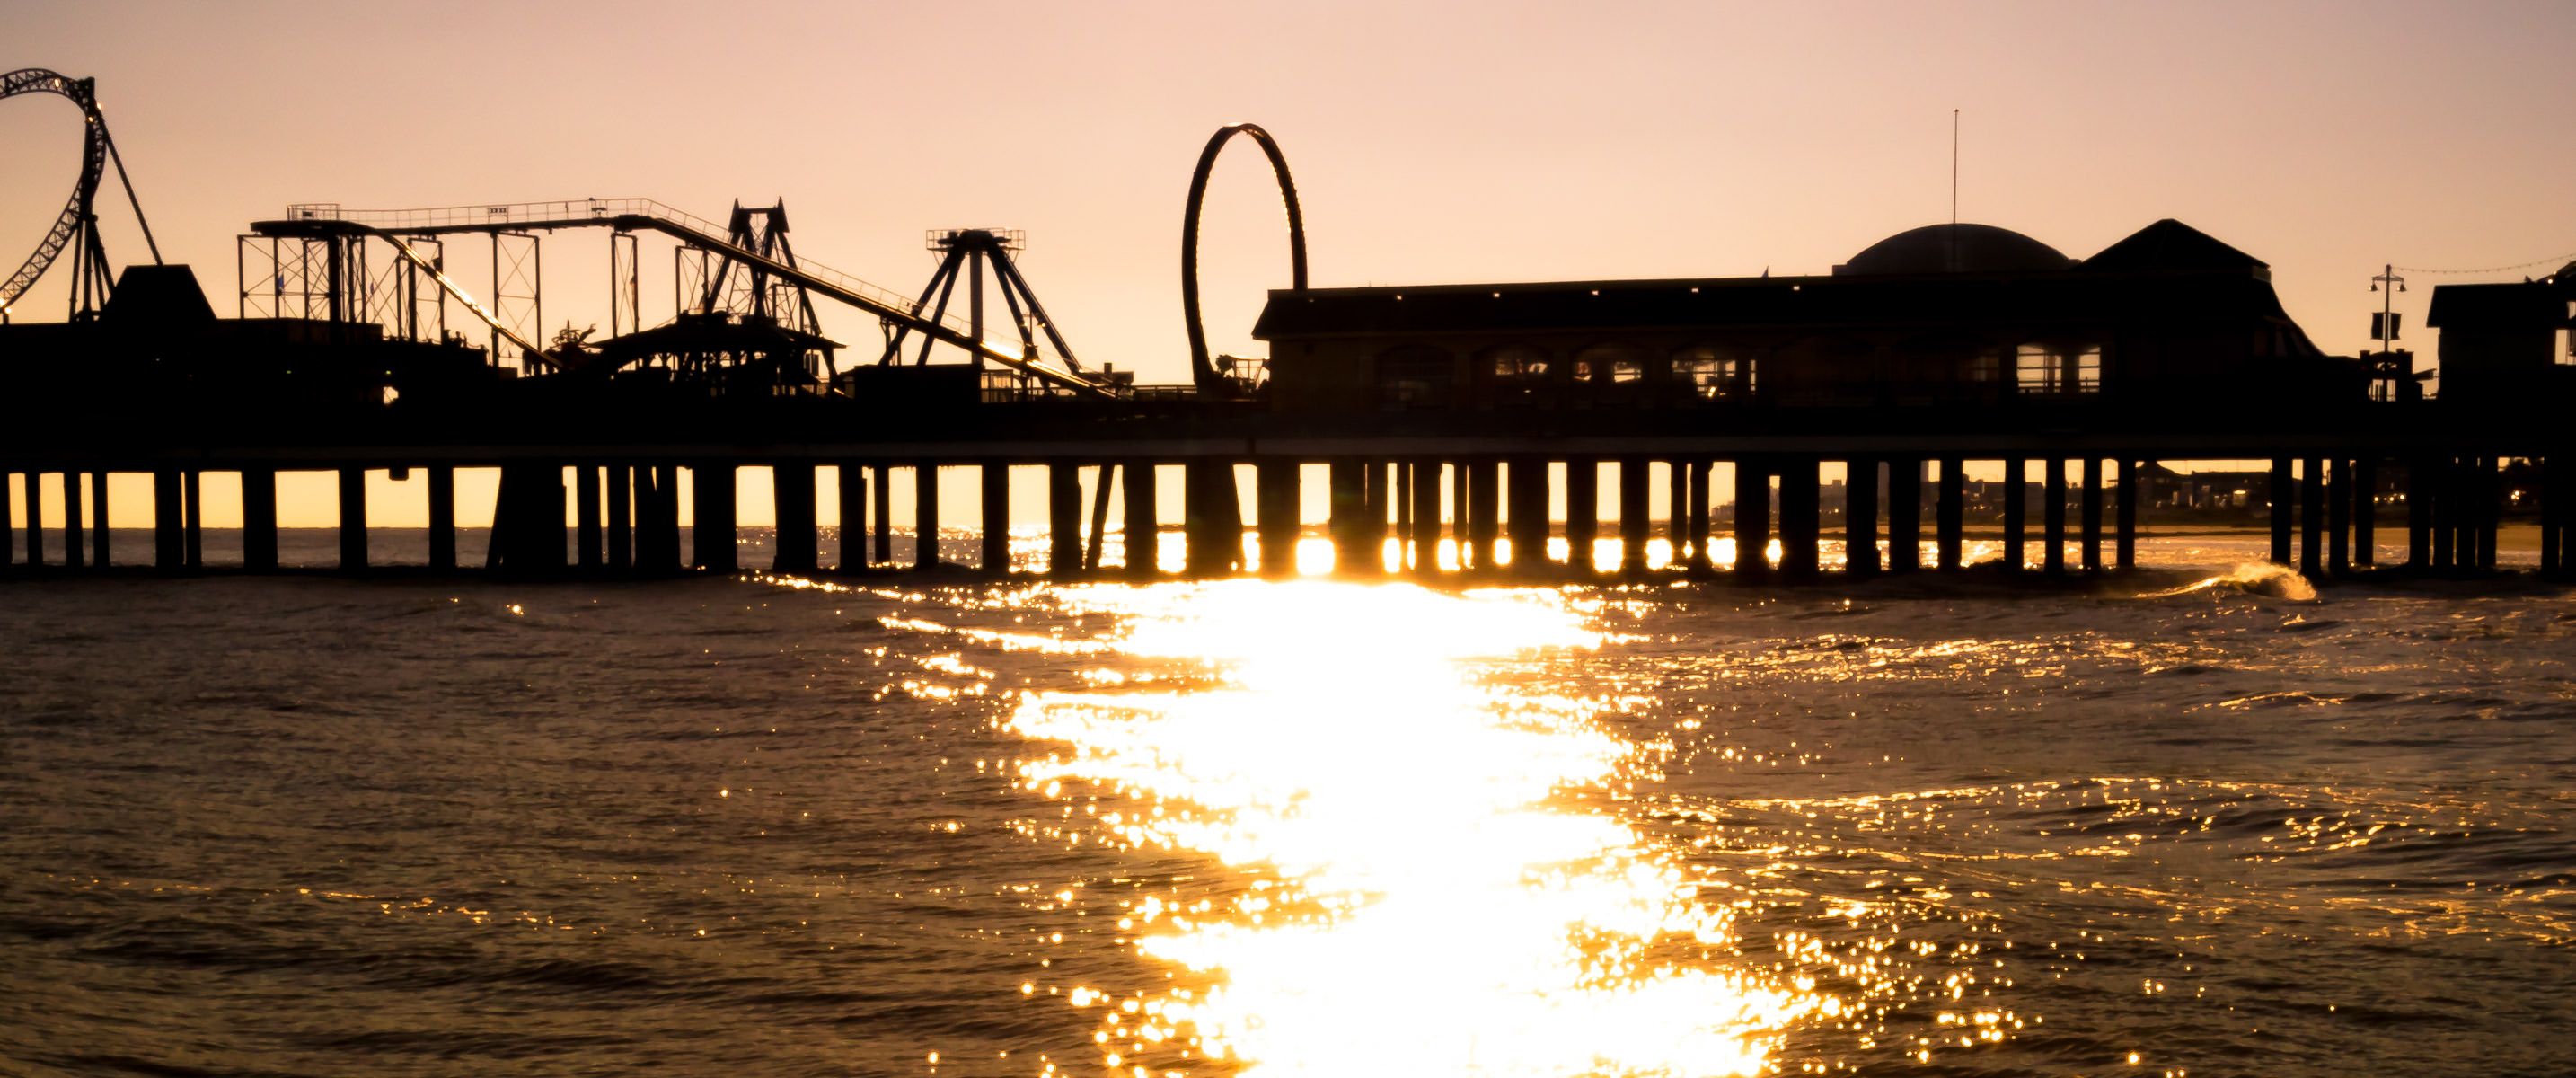 Galveston, Texas' Historic Pleasure Pier is silhouetted by the late-afternoon sun over the Gulf of Mexico.